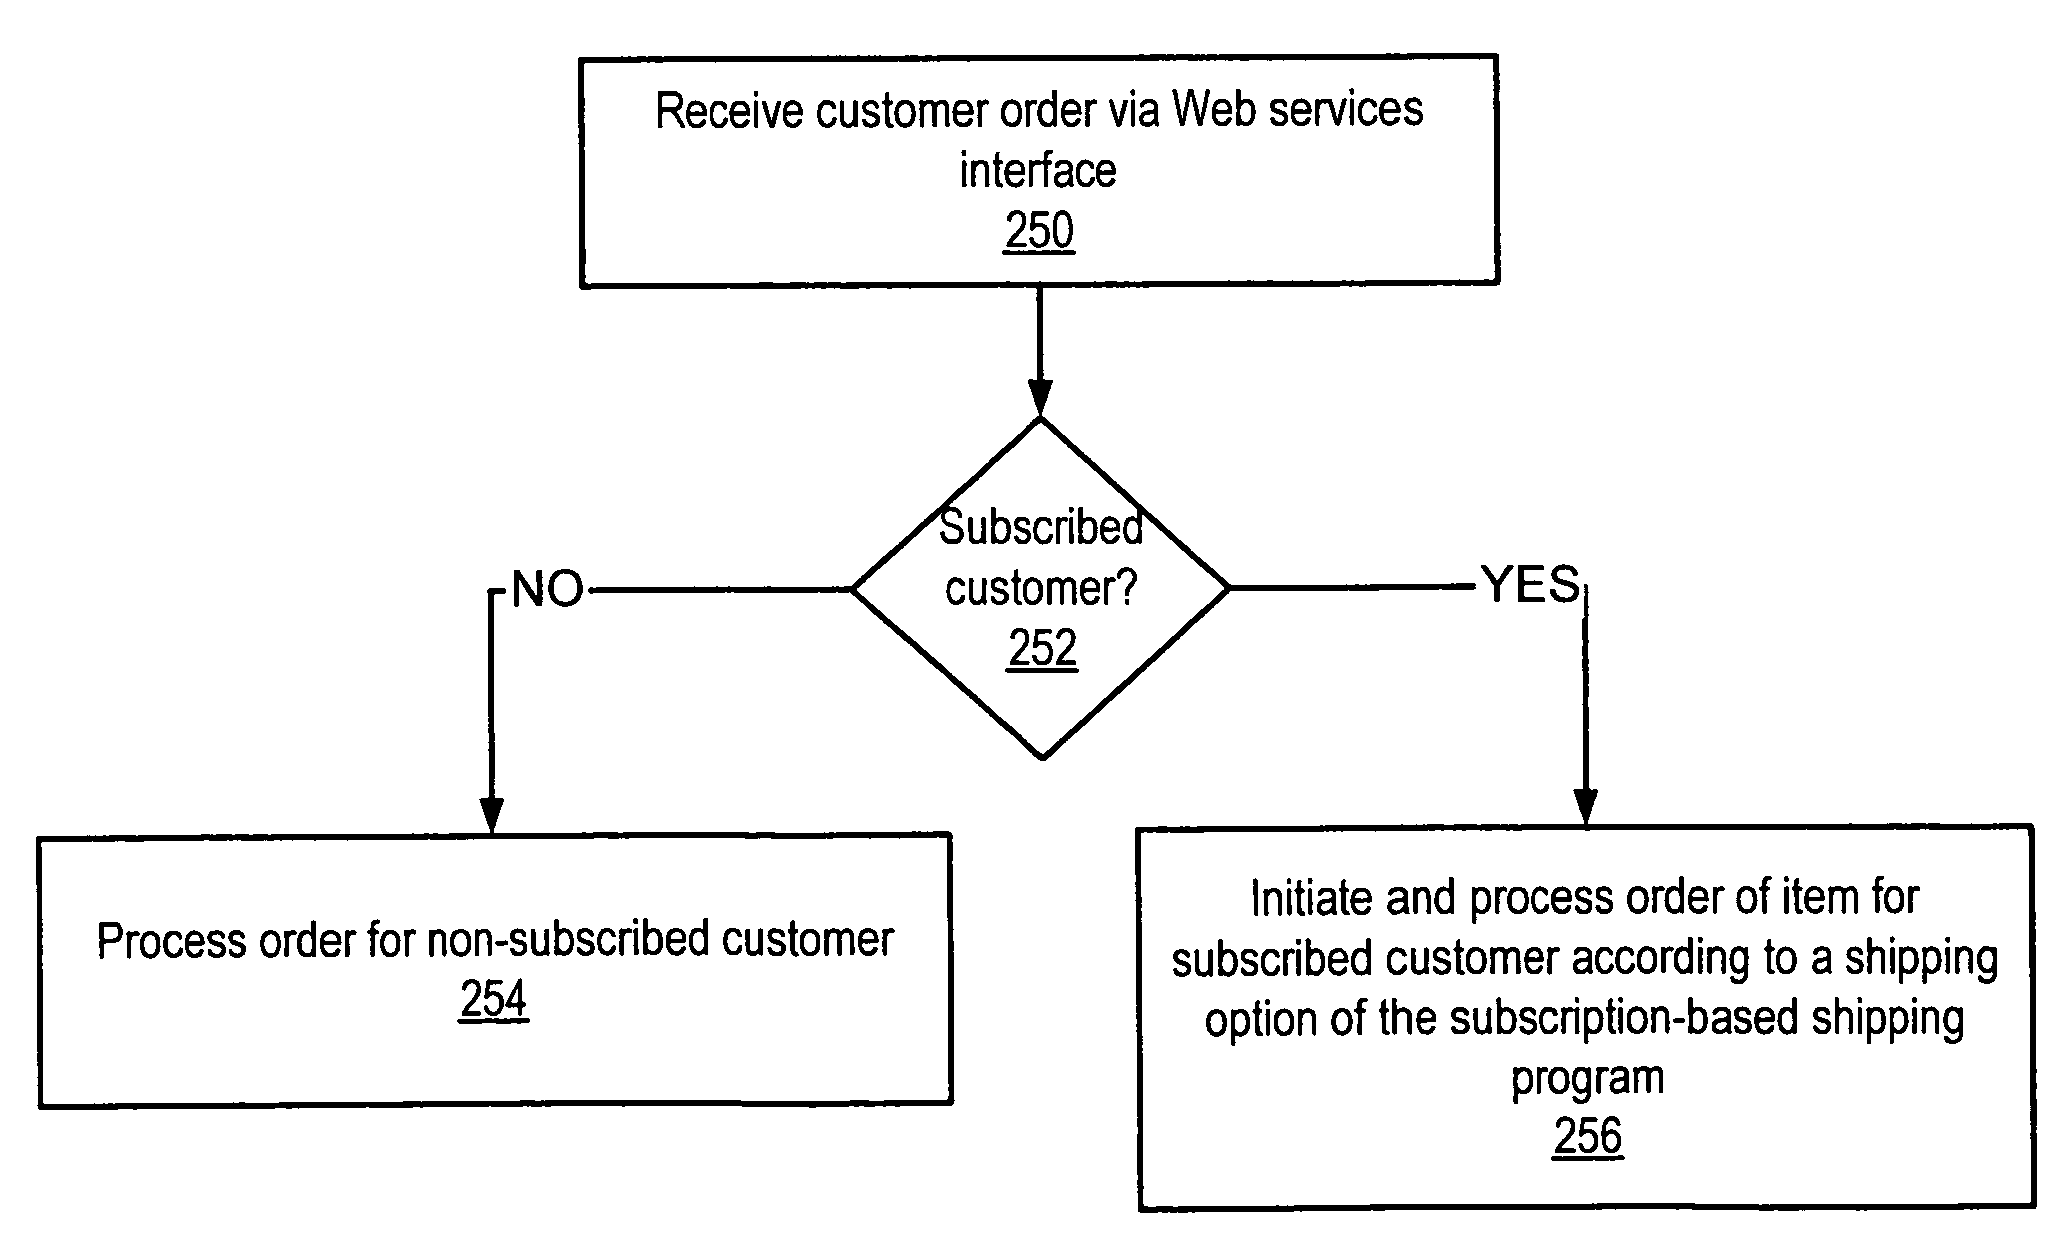 Amazon   patent by Jeff Bezos from 2009 for method and apparatus for subscription-based shipping - US7590565